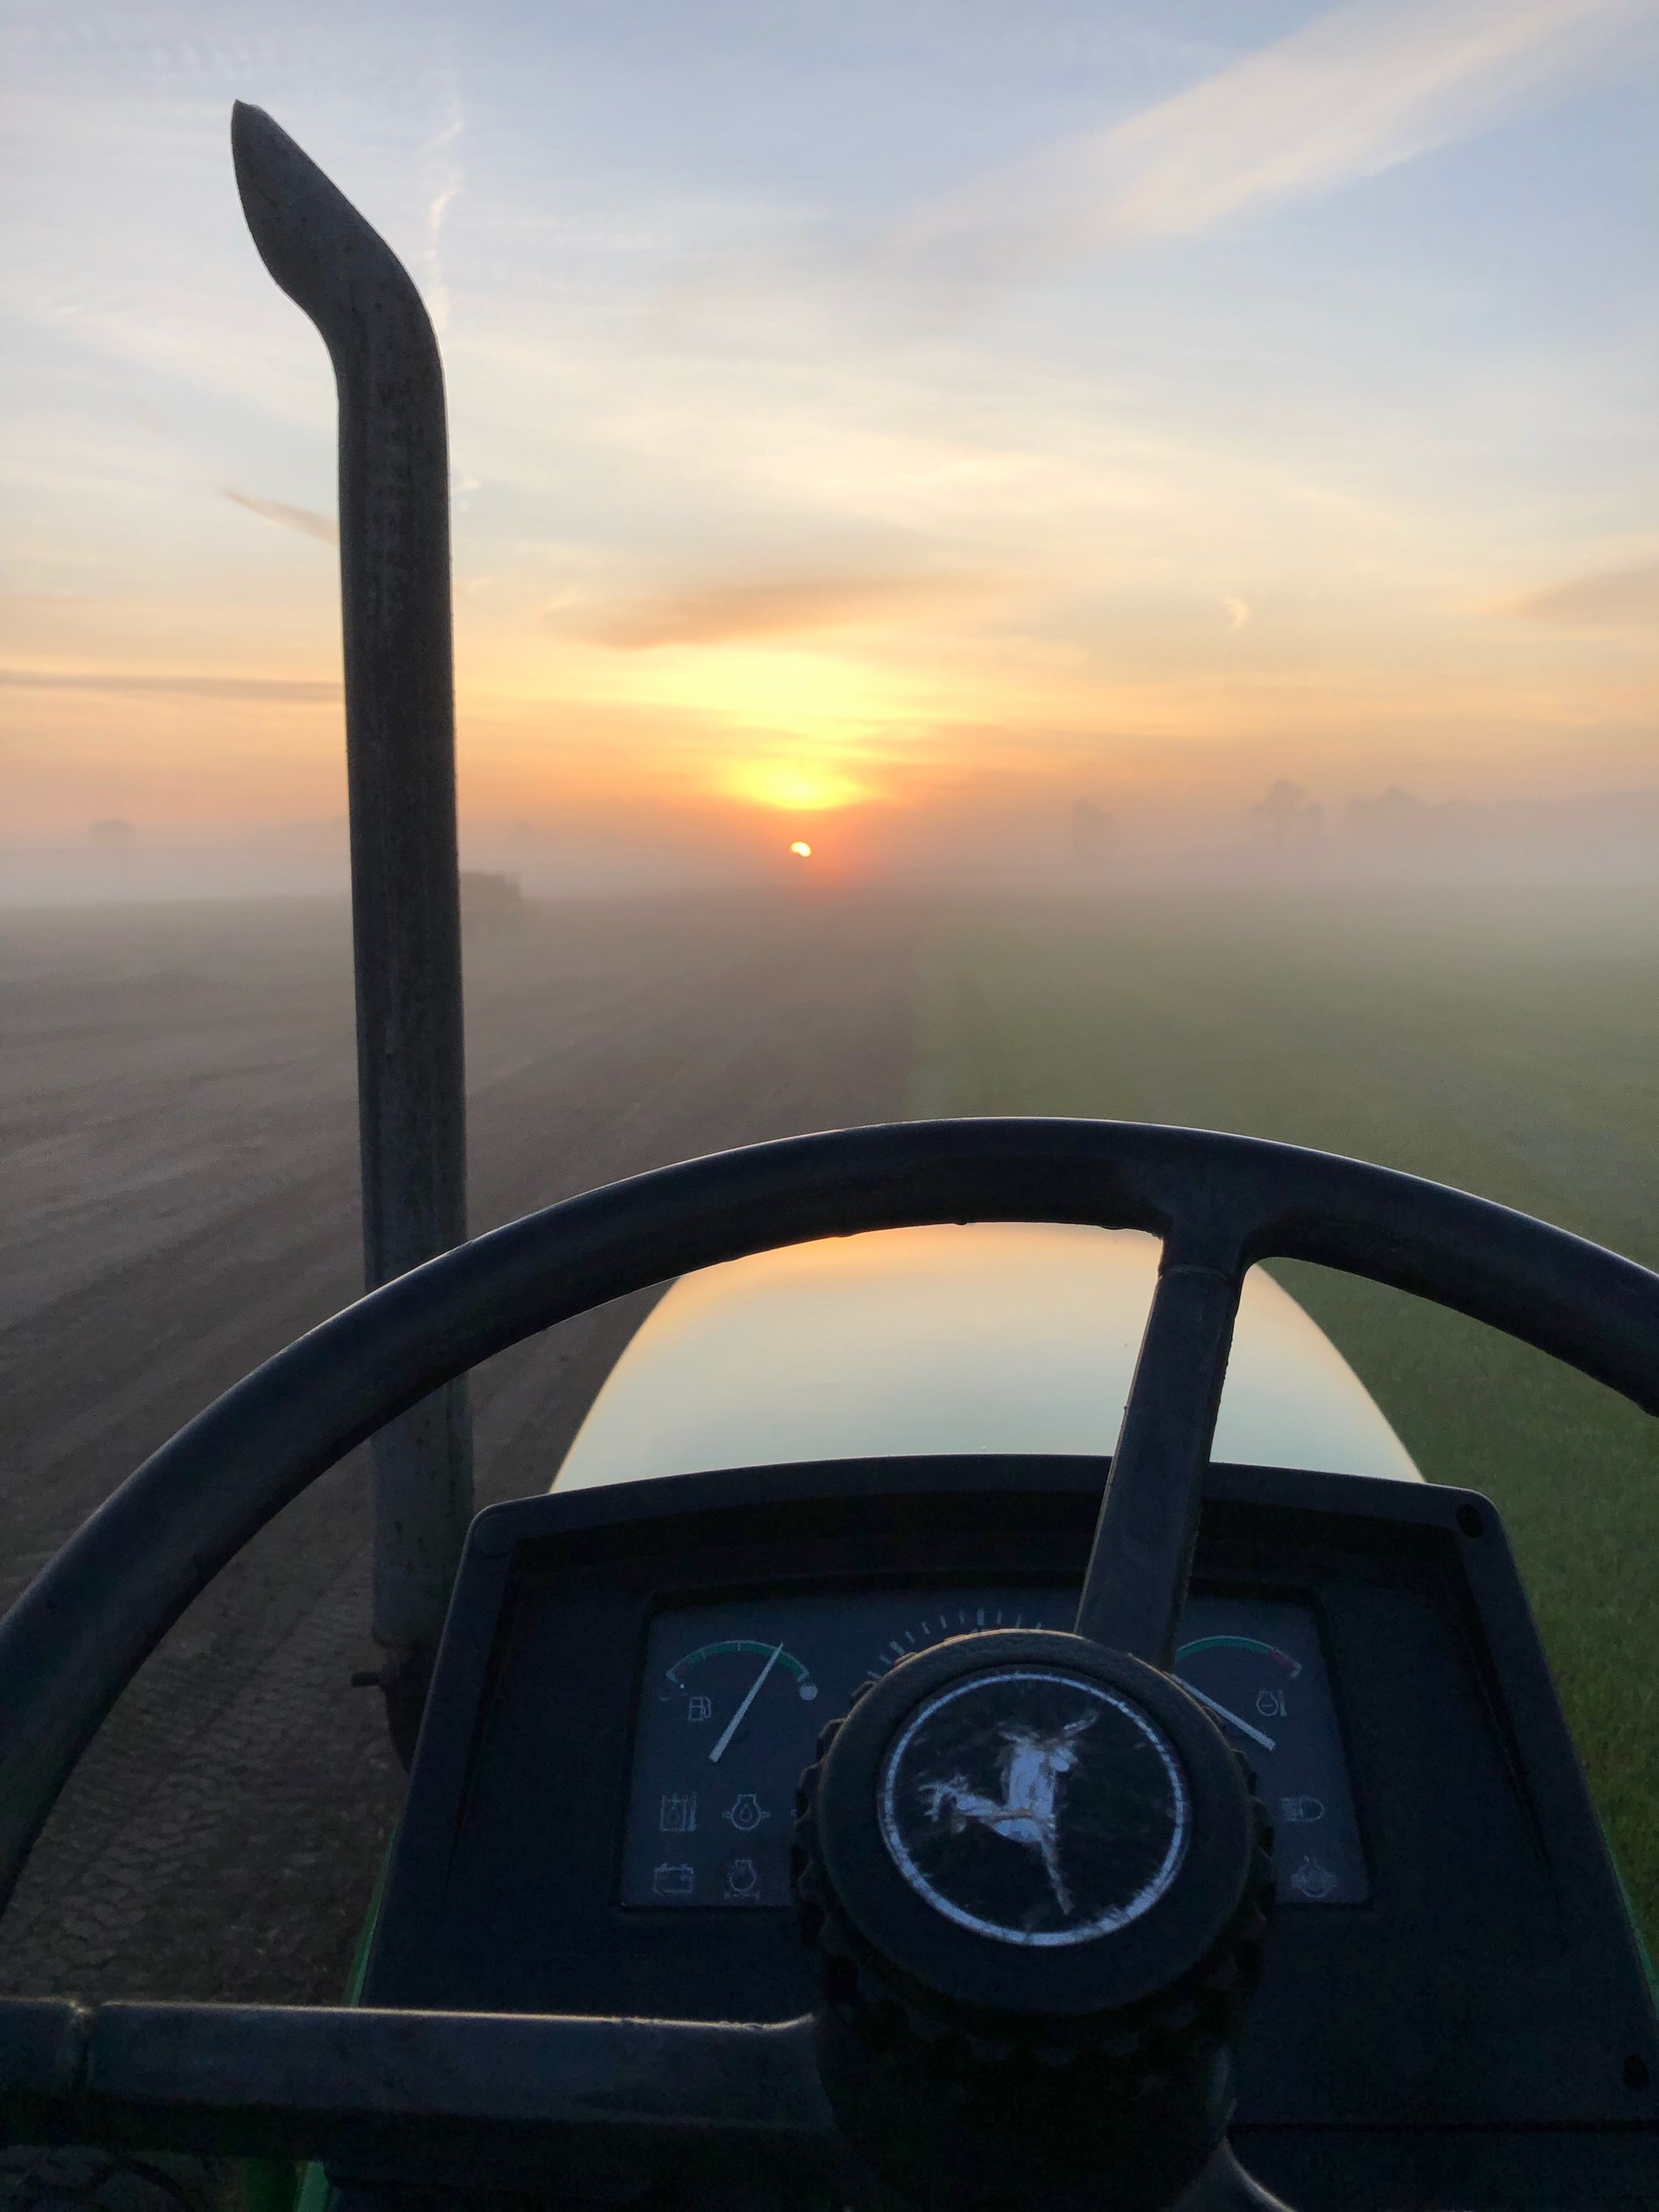 Good Morning Today We Re Sharing Another Photo From Our Red Hen Team That Was Submitted To Our 2019 Photo Contest This One Was Ta In 2020 Red Hen Turf Photo Contest